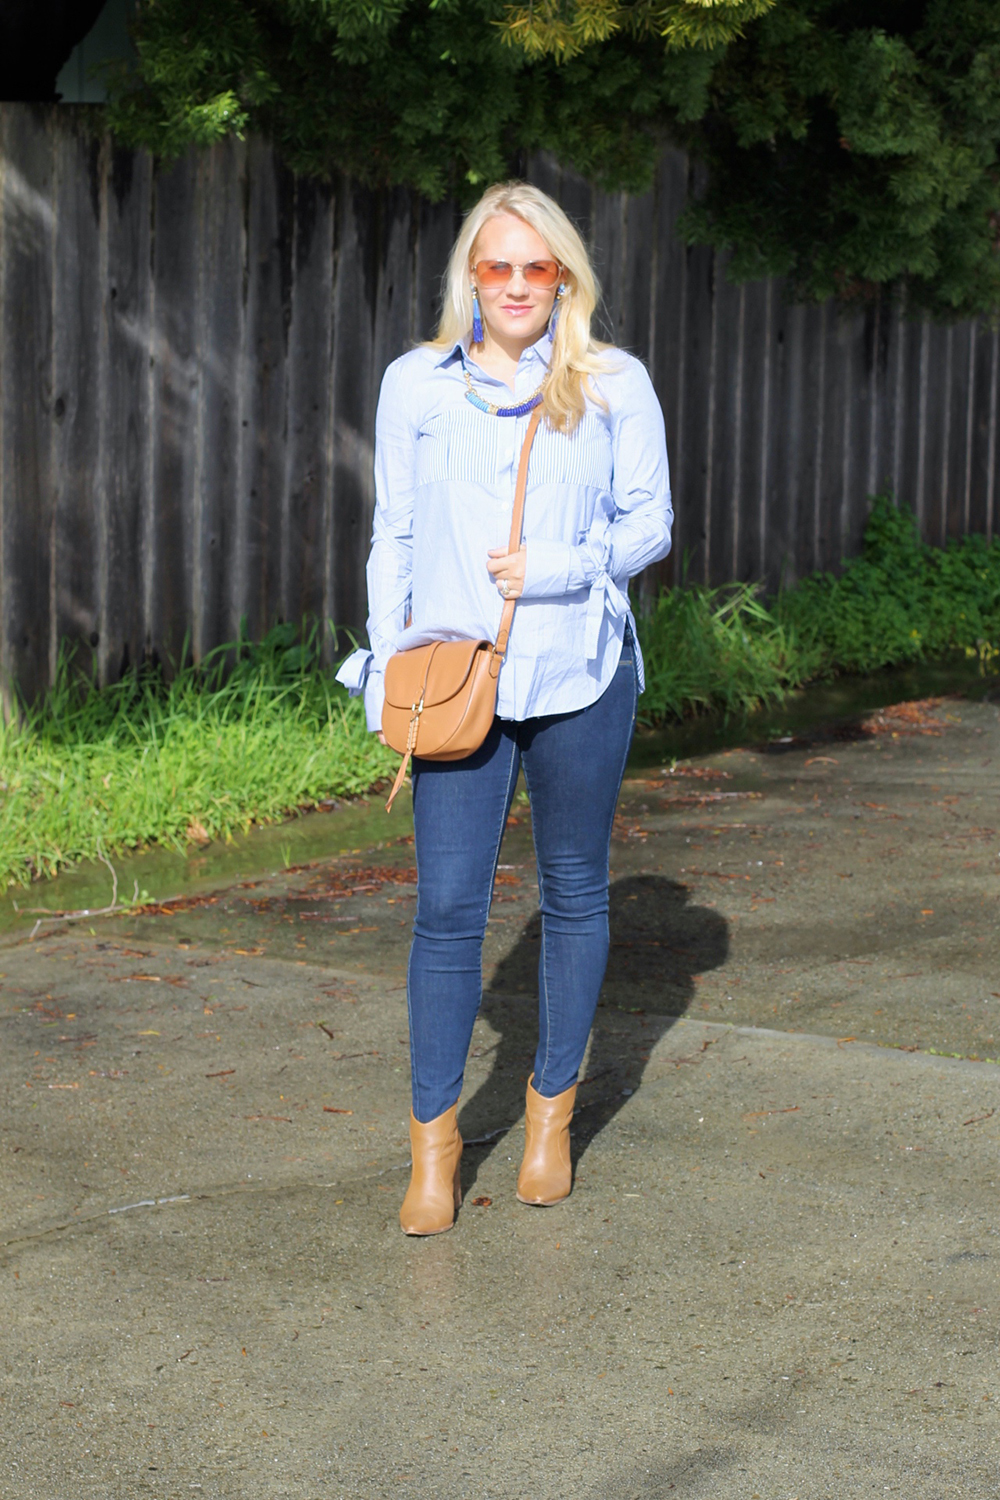 Tie Up Sleeve Blouse-Tibi Stripe Button Down-Outfit Inspiration-Have Need Want 3